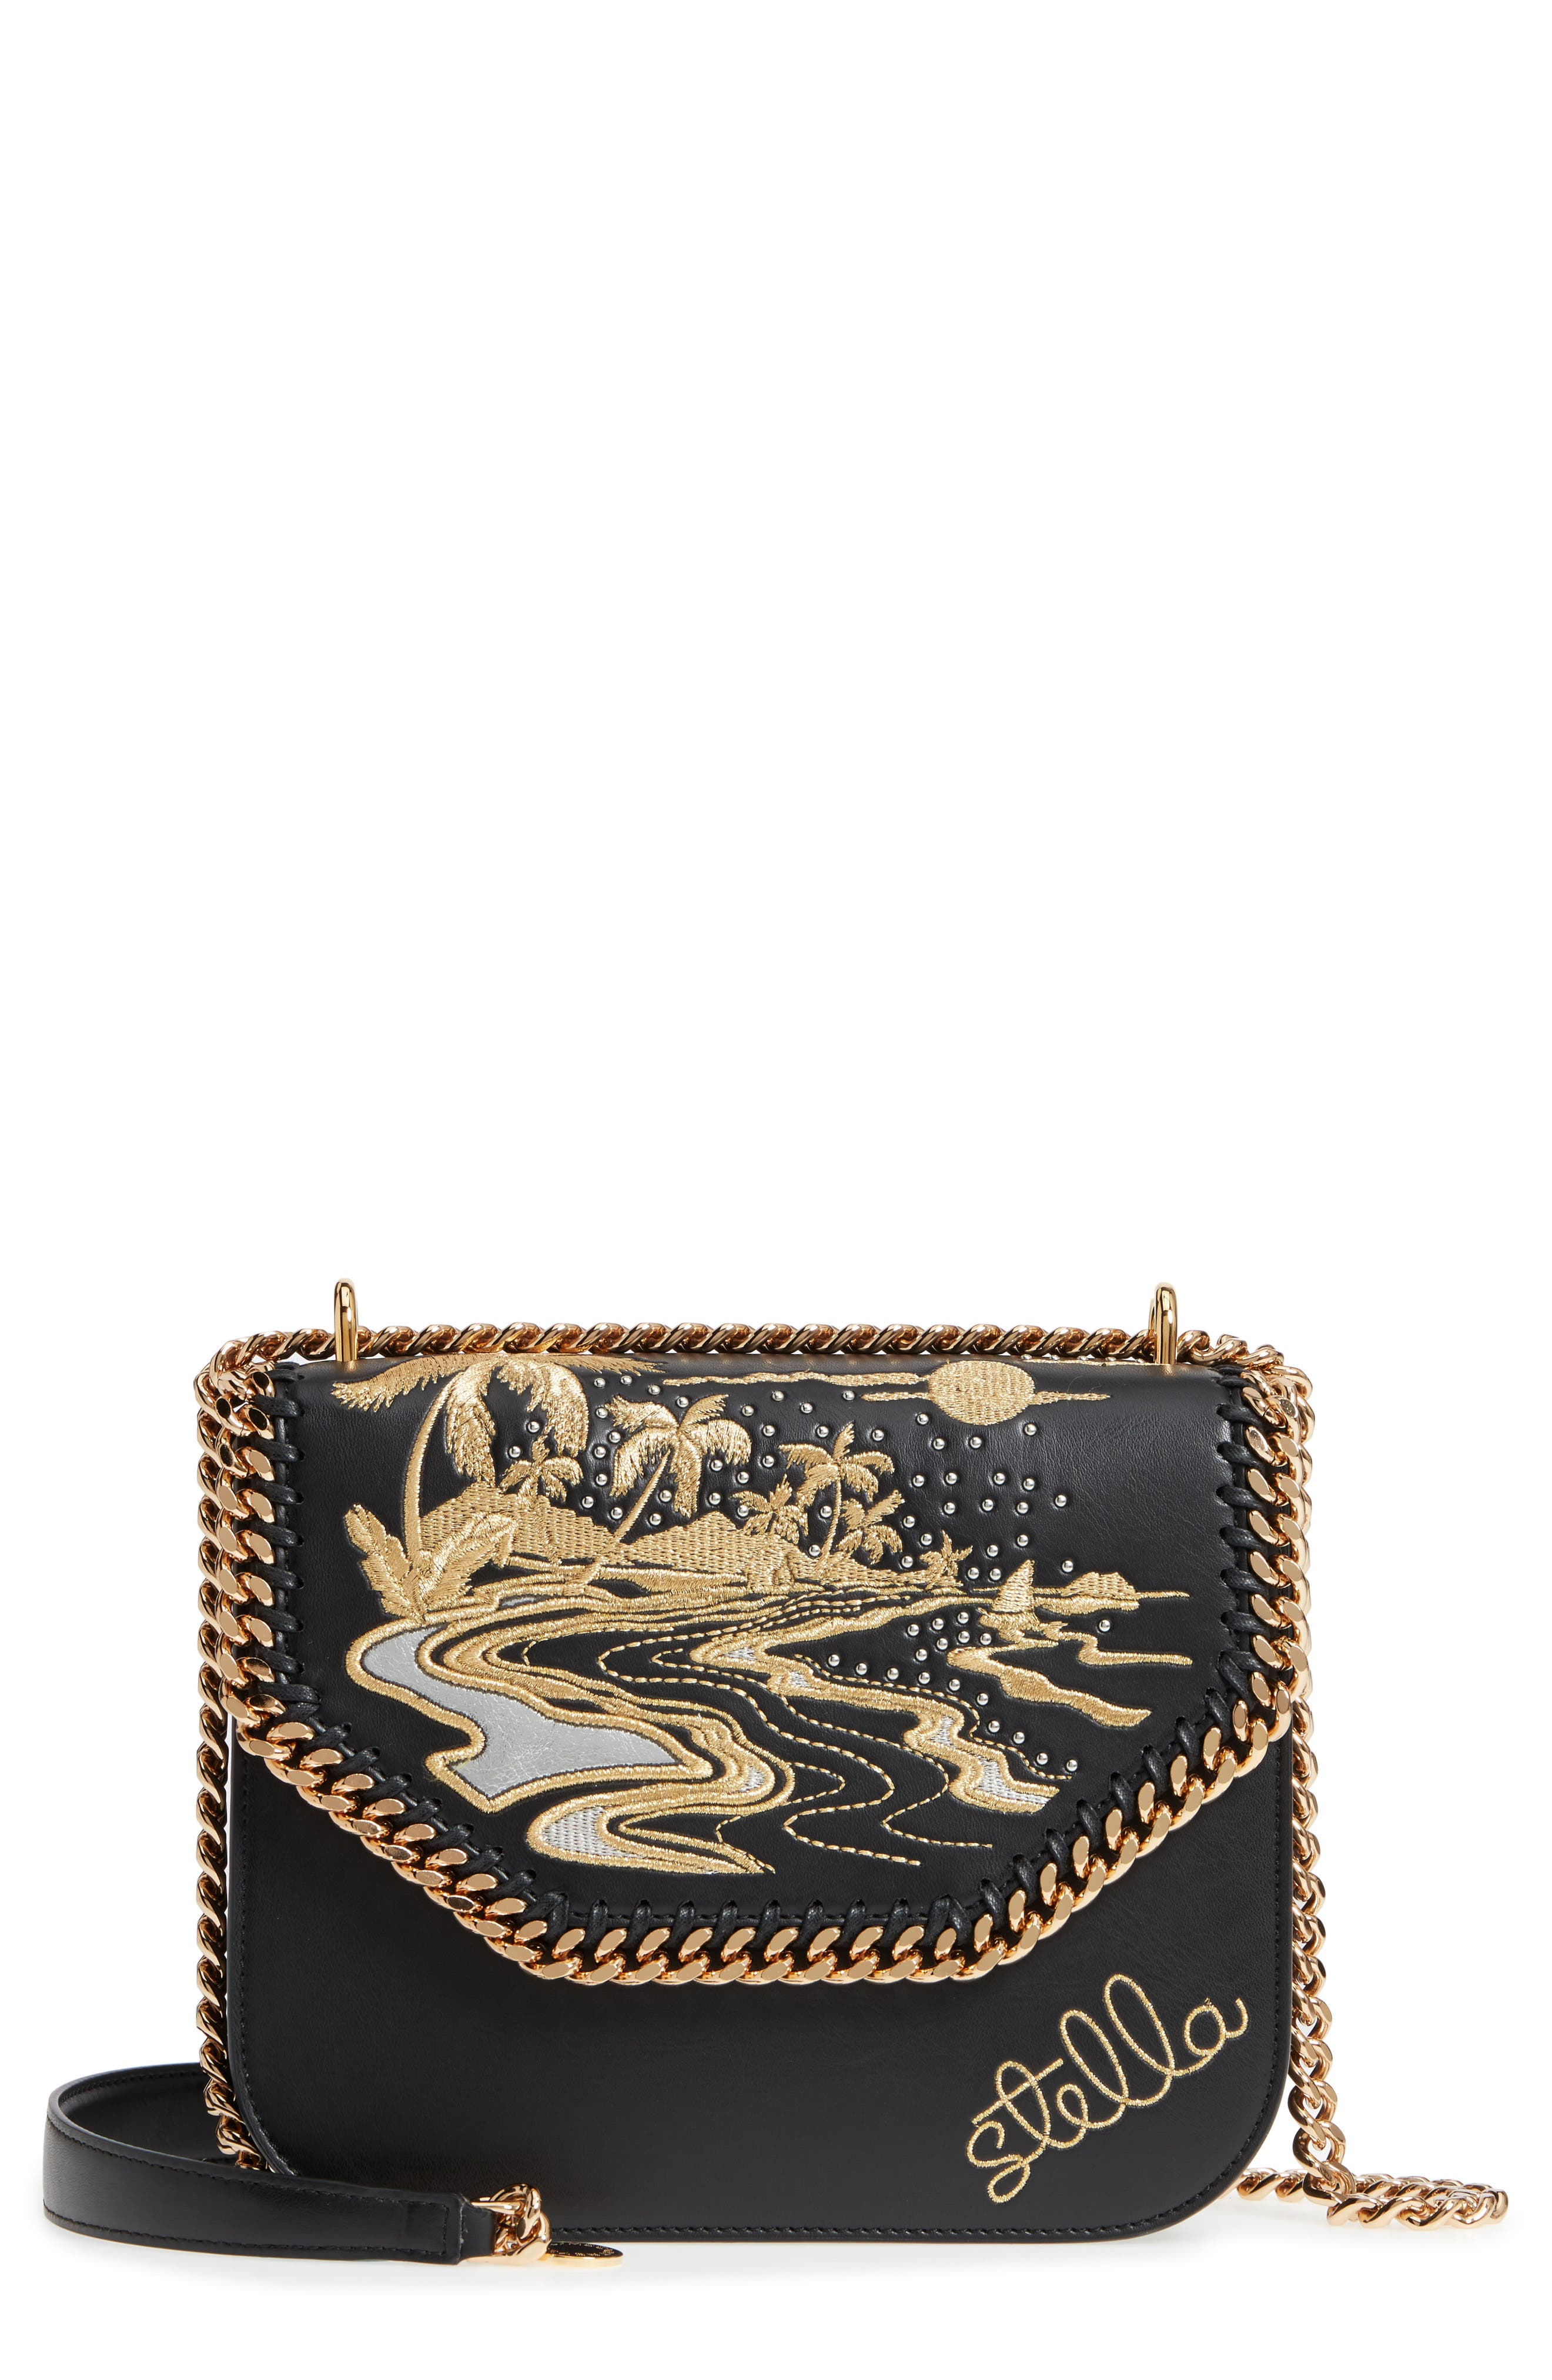 Falabella Hawaiian Embroidered Faux Leather Shoulder Bag,                         Main,                         color, Black/ Gold